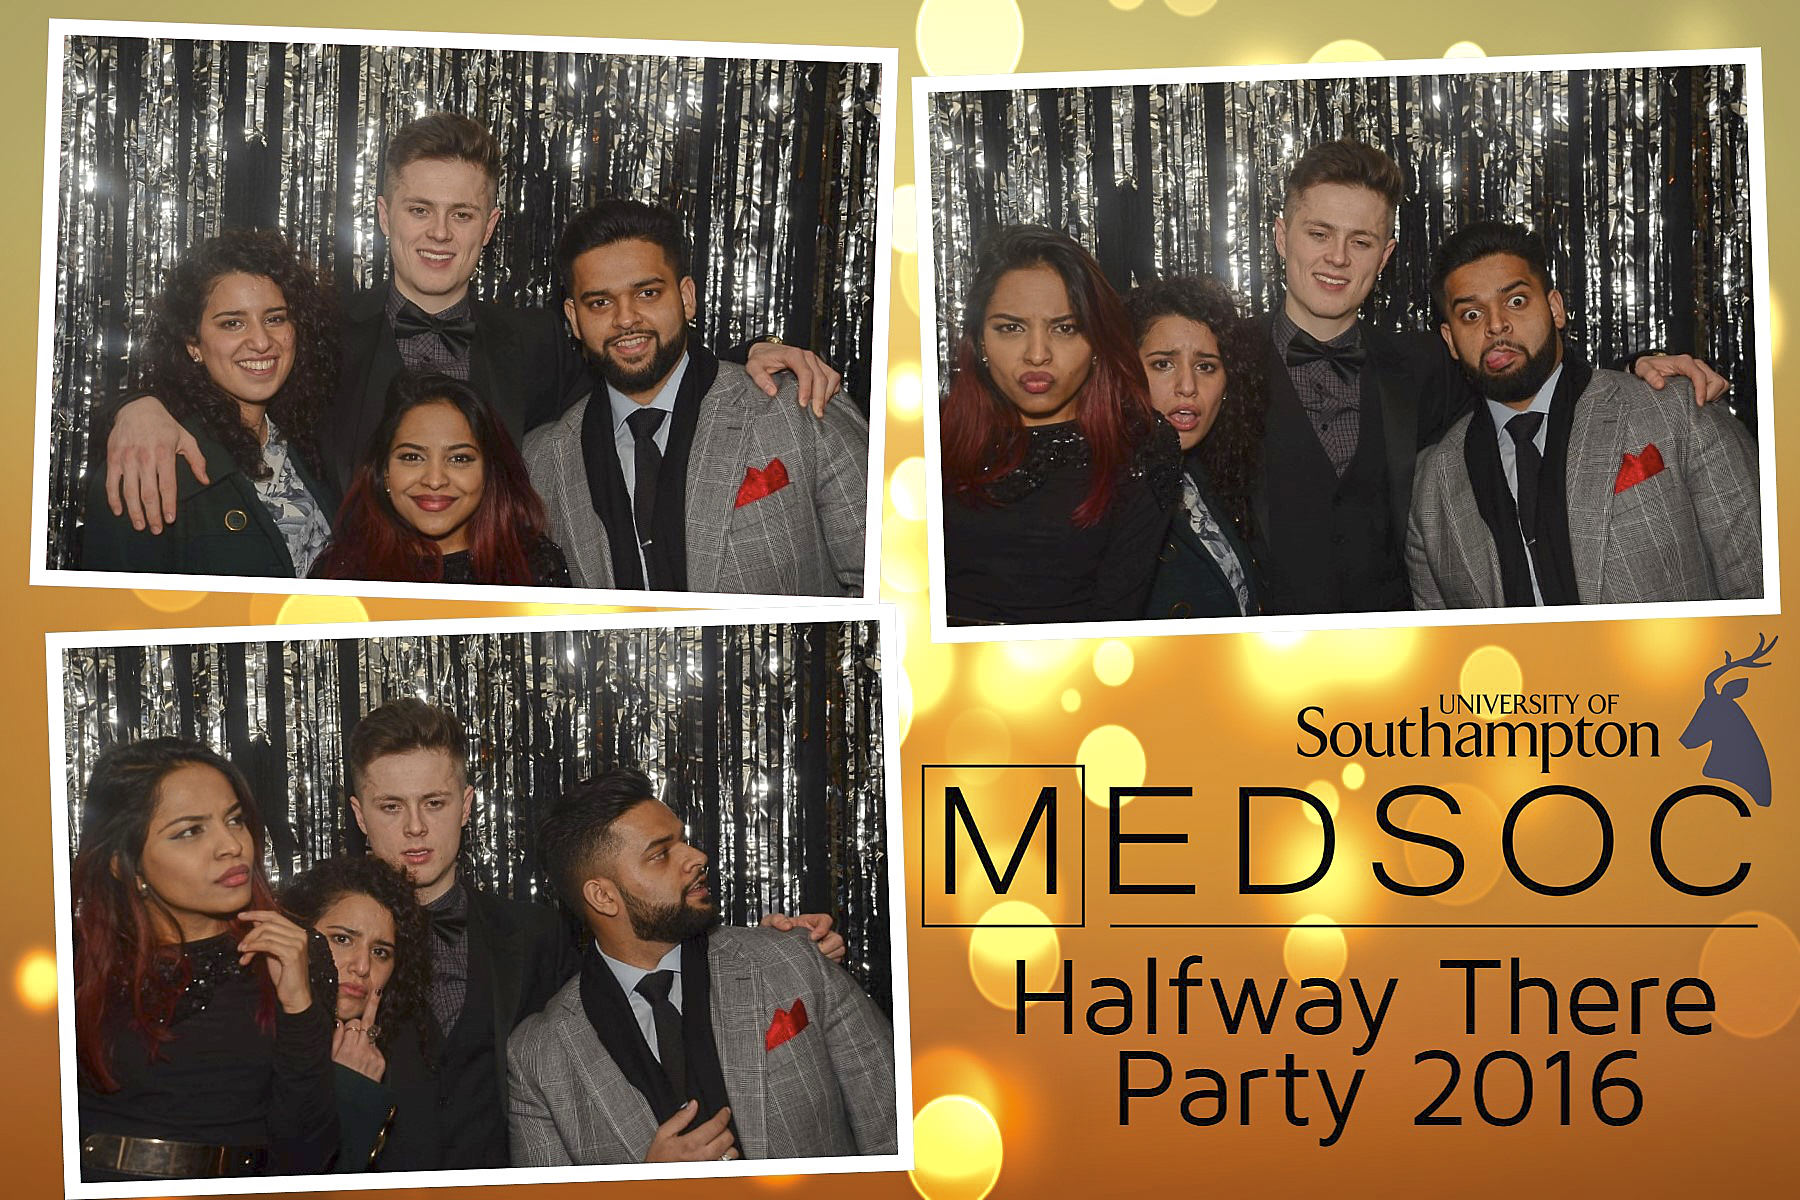 MedSoc Halfway There Party 2016 DS013533.jpg